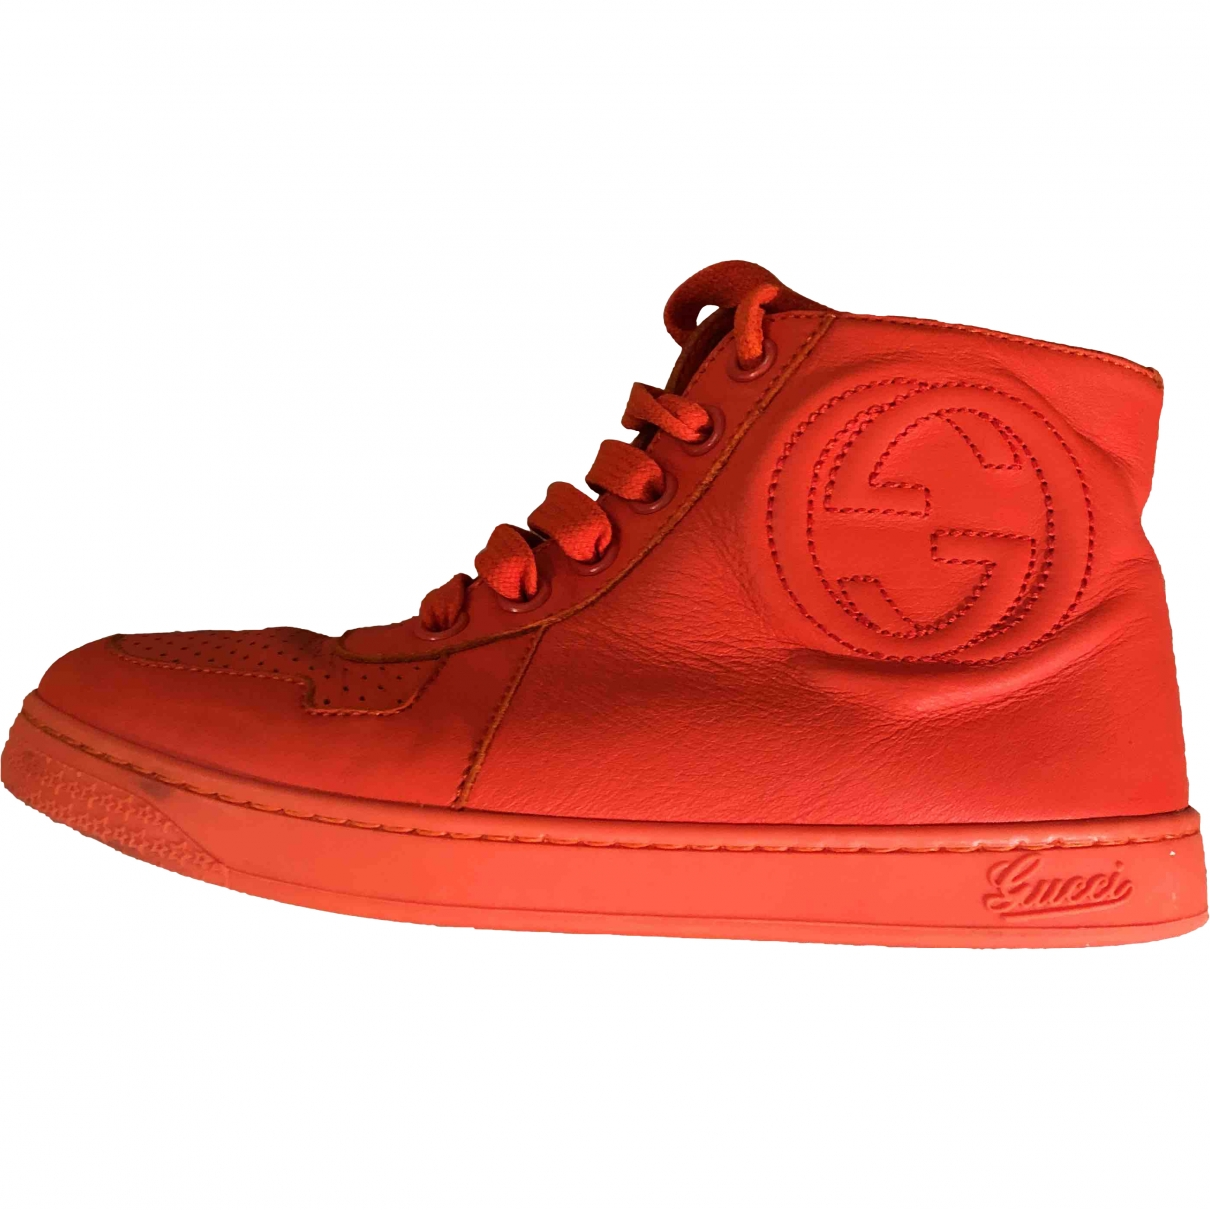 Gucci \N Red Leather Boots for Kids 30 EU